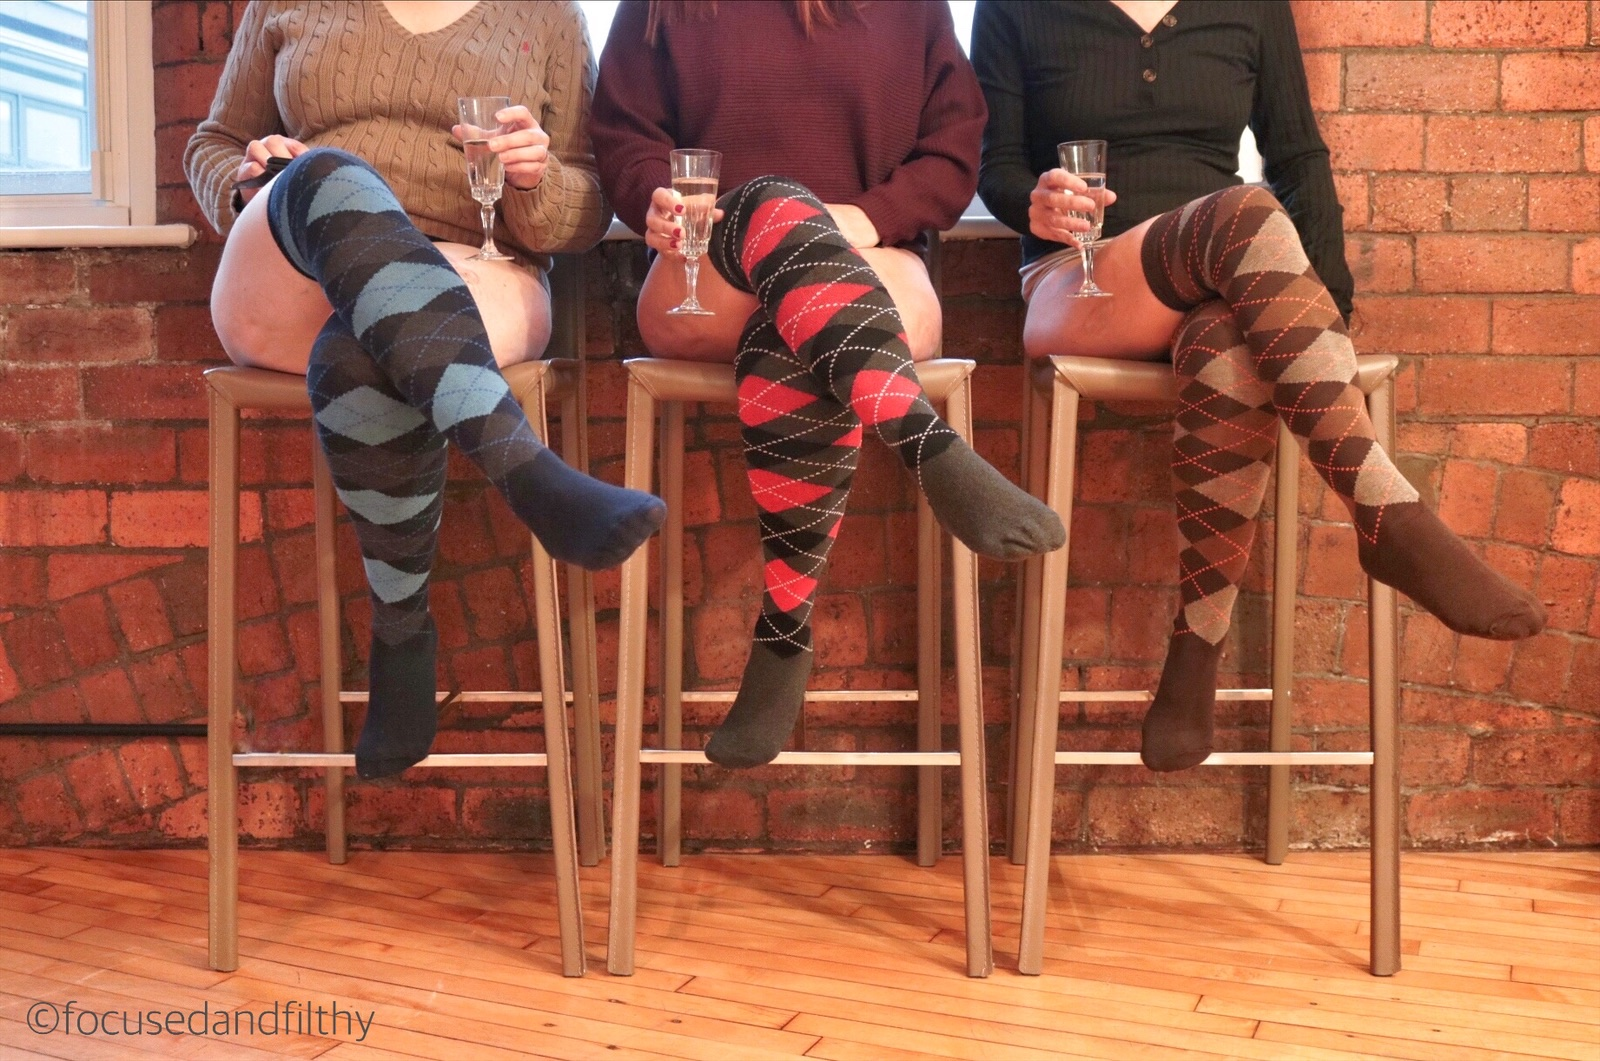 Colour photograph of three women sat on tall stools wearing jumpers and matching long argyle socks in different colours blue red and brown, the image only goes up to neck height and each woman is holding a glass of wine. The background is industrial red brick and wooden floor boards